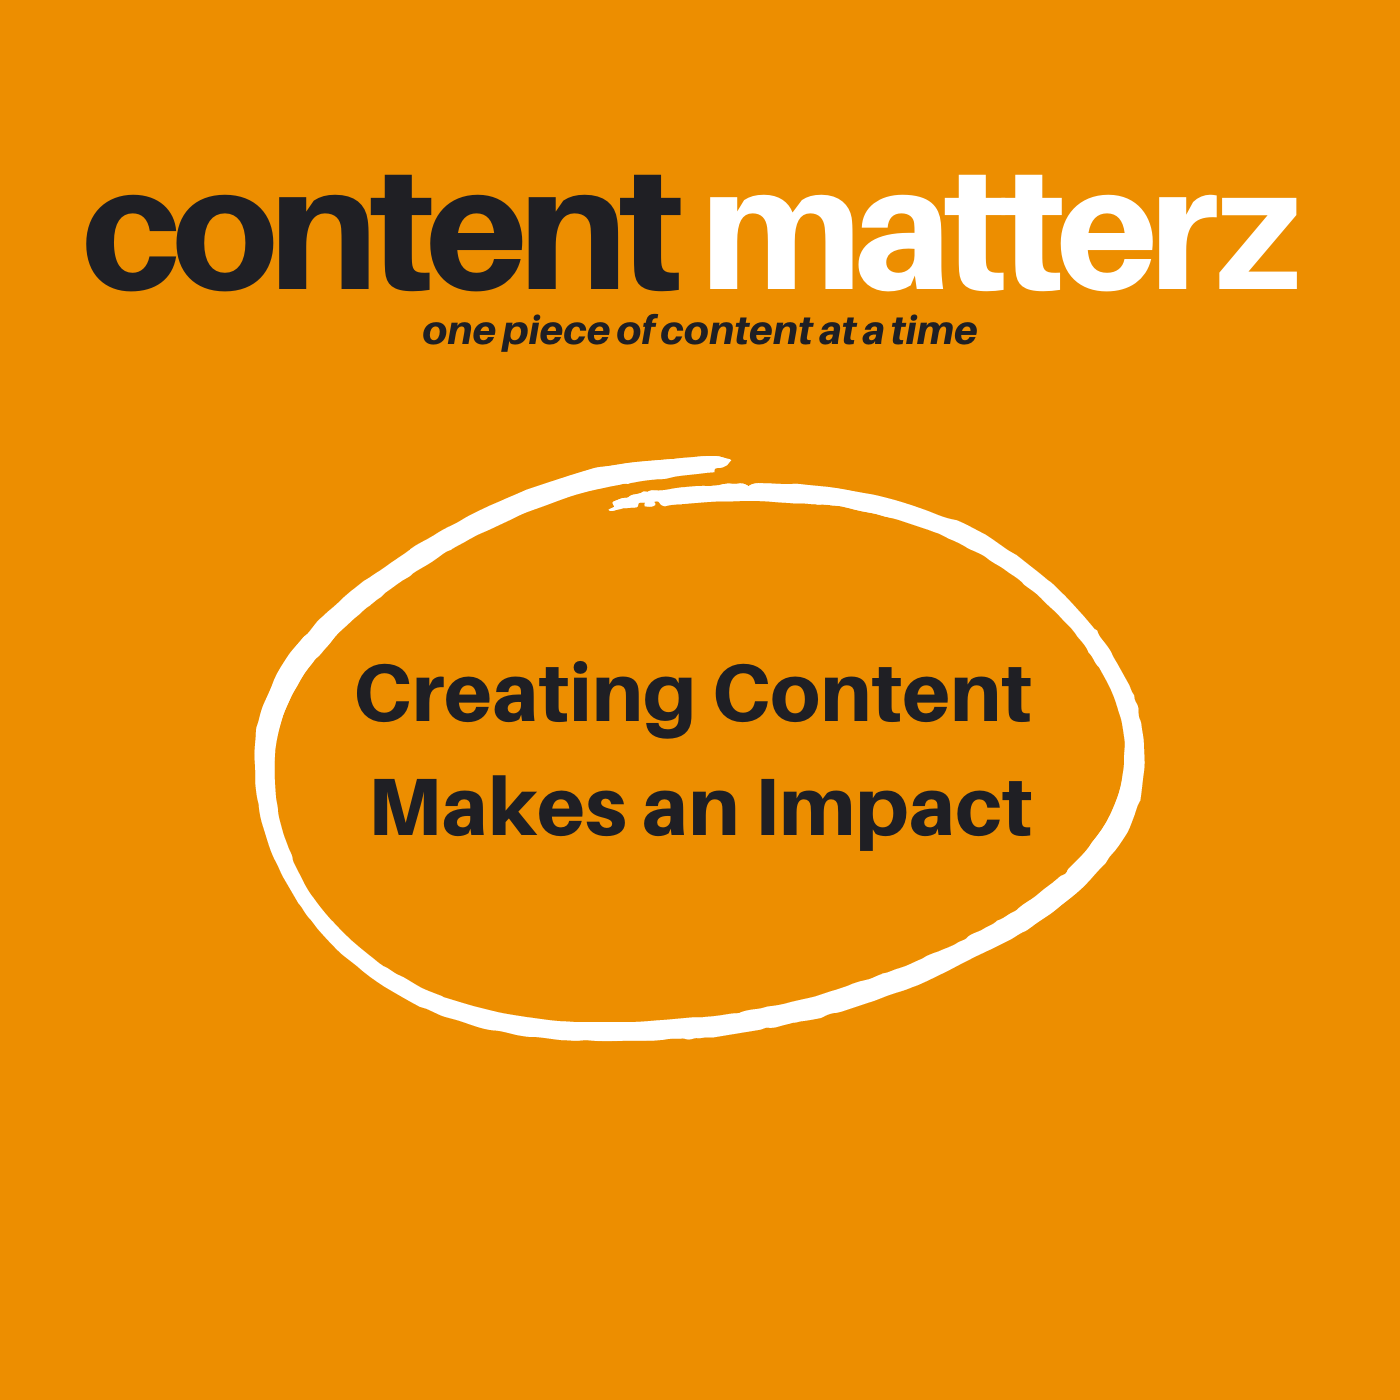 Creating Content Makes an Impact